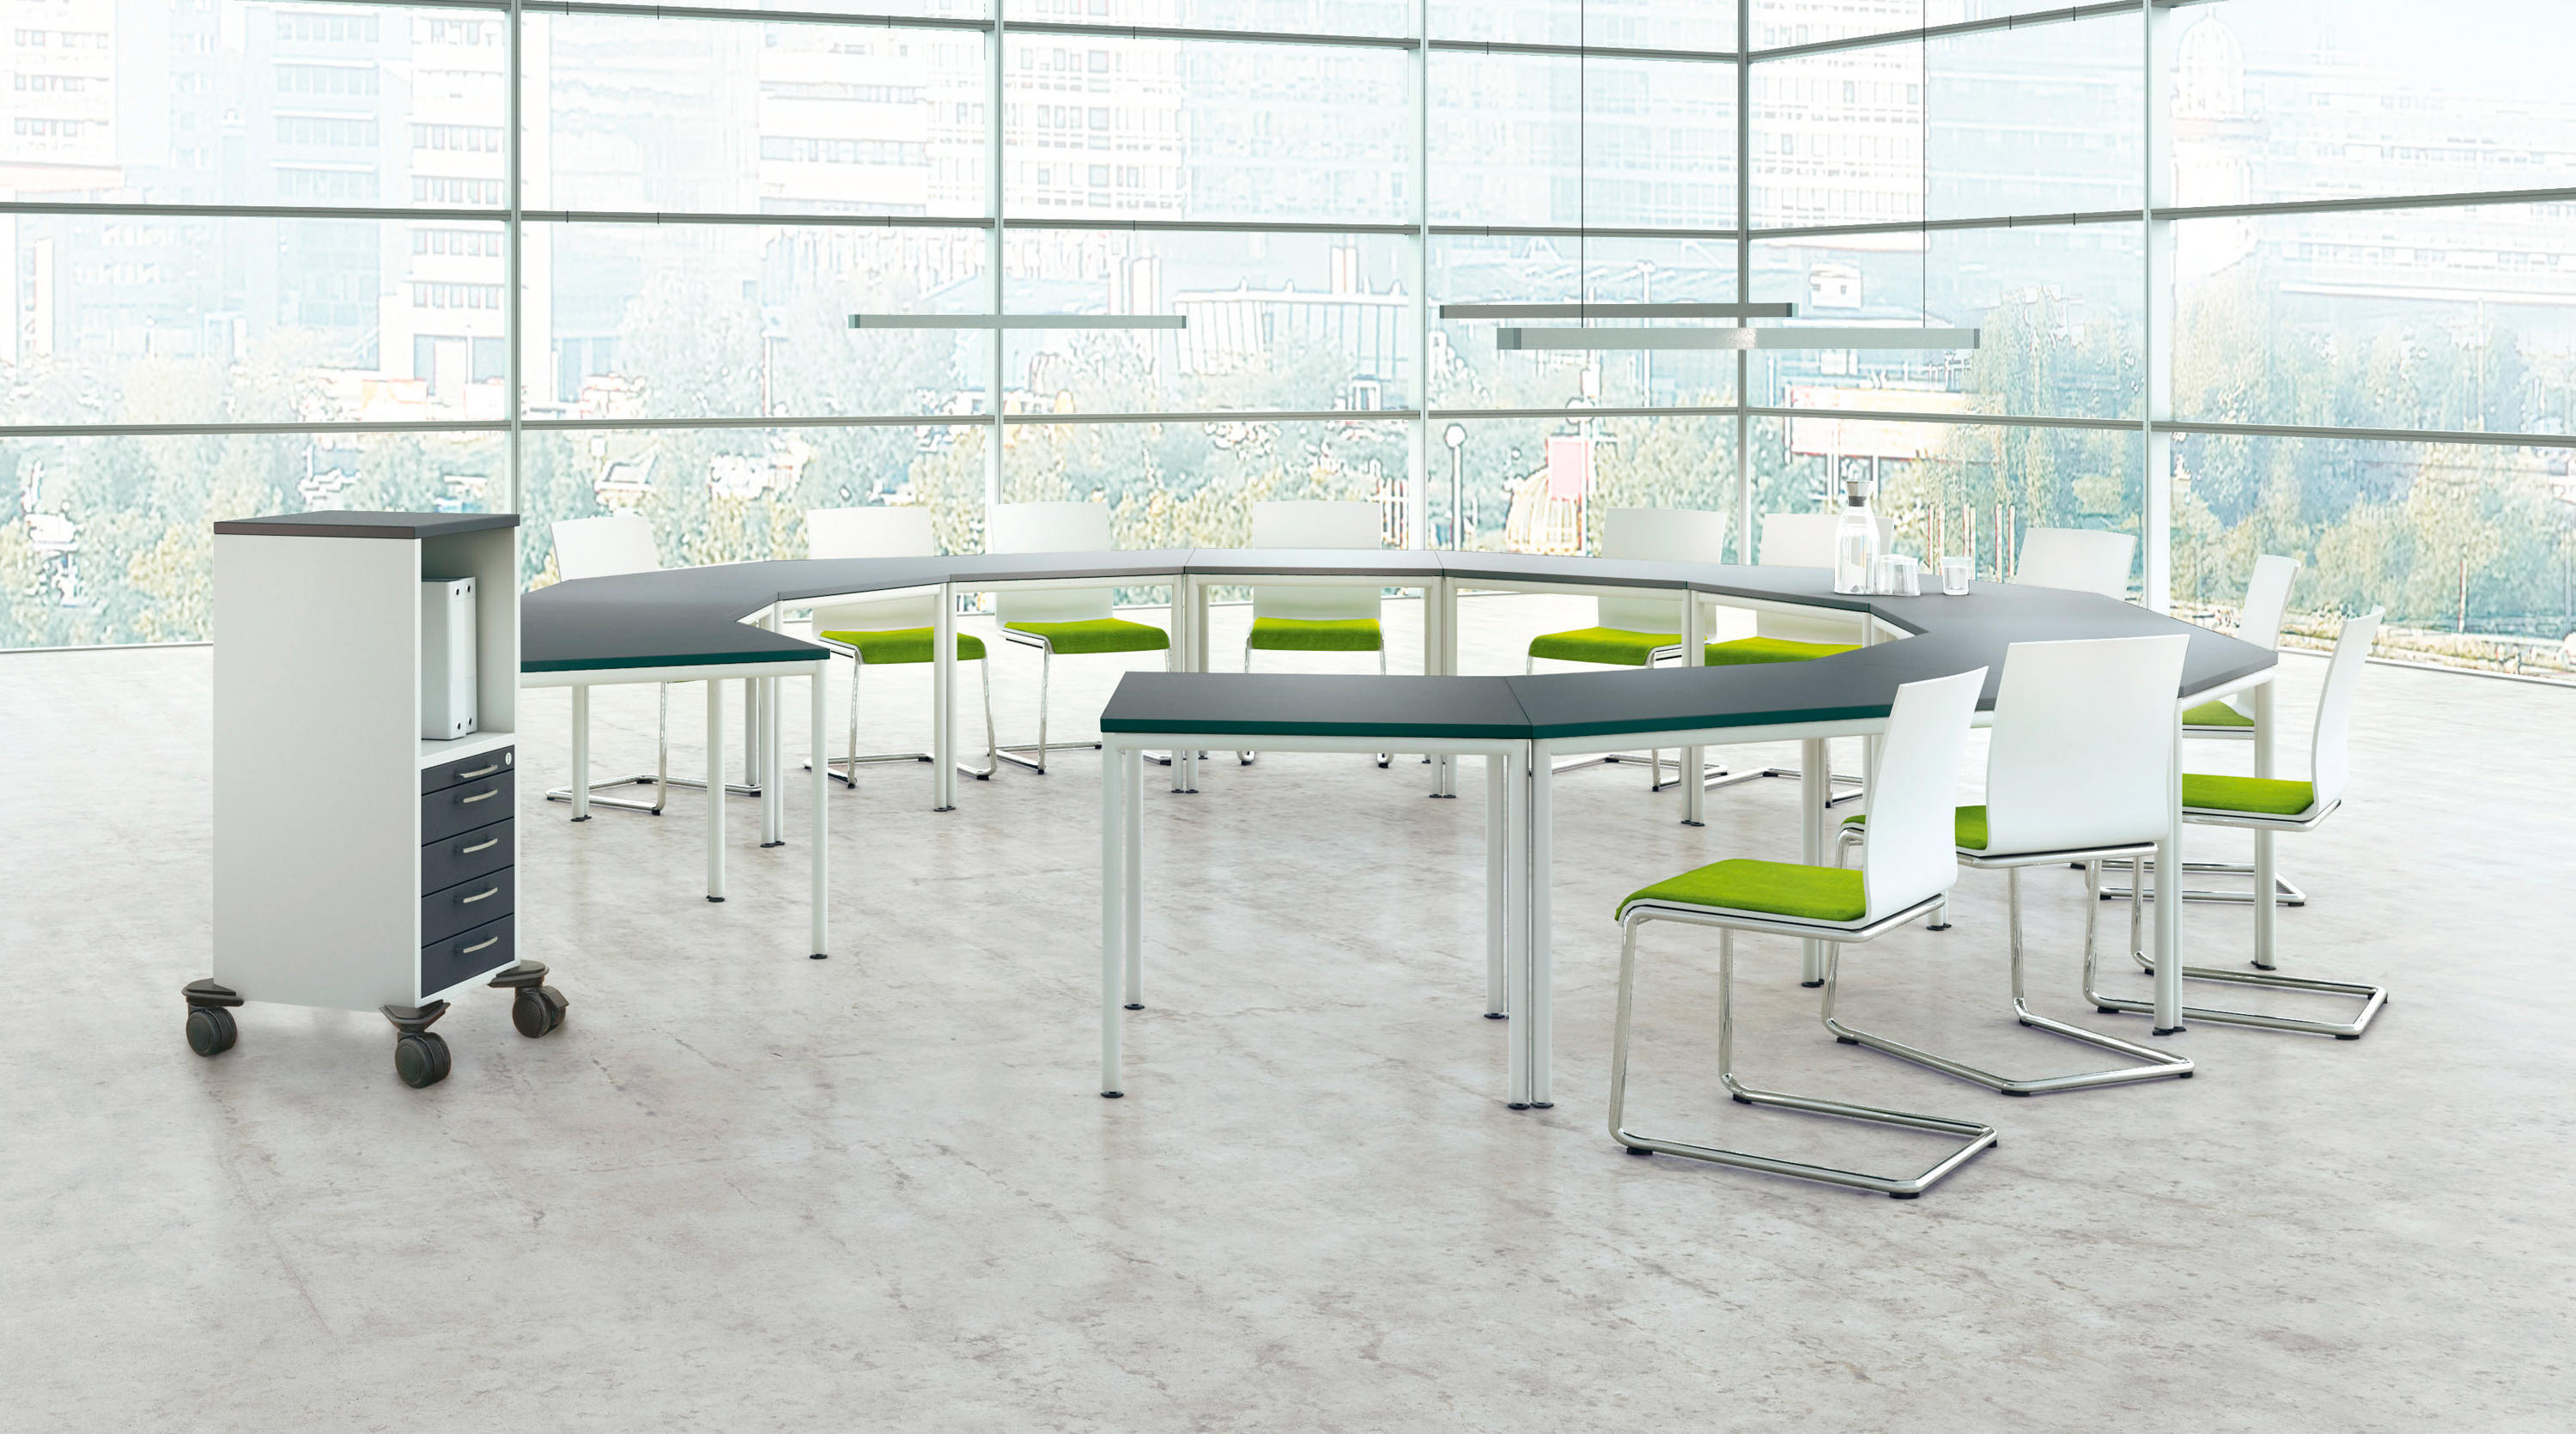 pontis meeting conference table systems from assmann. Black Bedroom Furniture Sets. Home Design Ideas